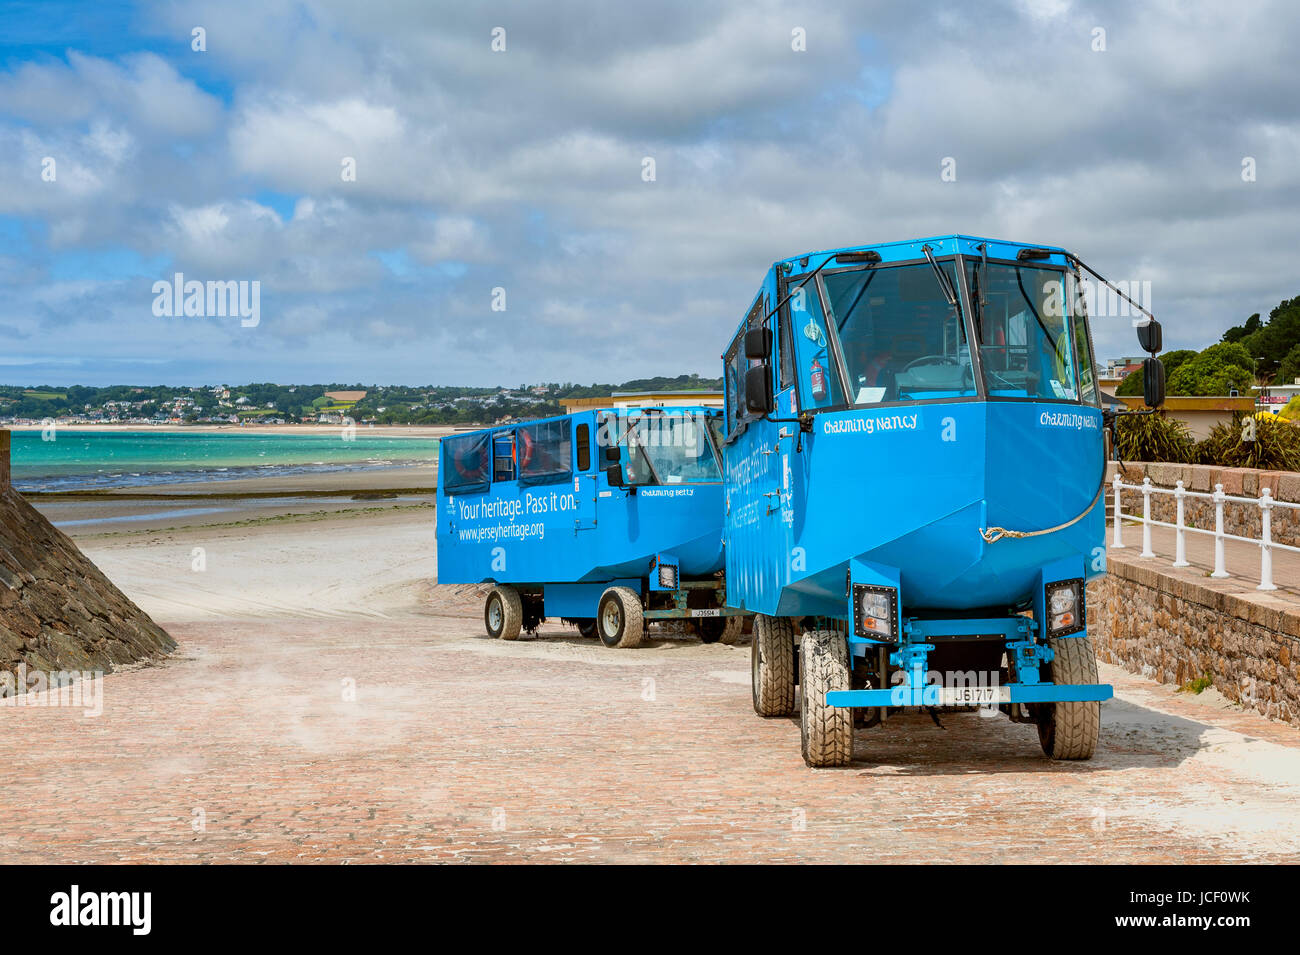 Amphibious vehicles on the beach of St. Helier, Jersey, UK. They are used to transport tourists to Elizabeth Castle - Stock Image